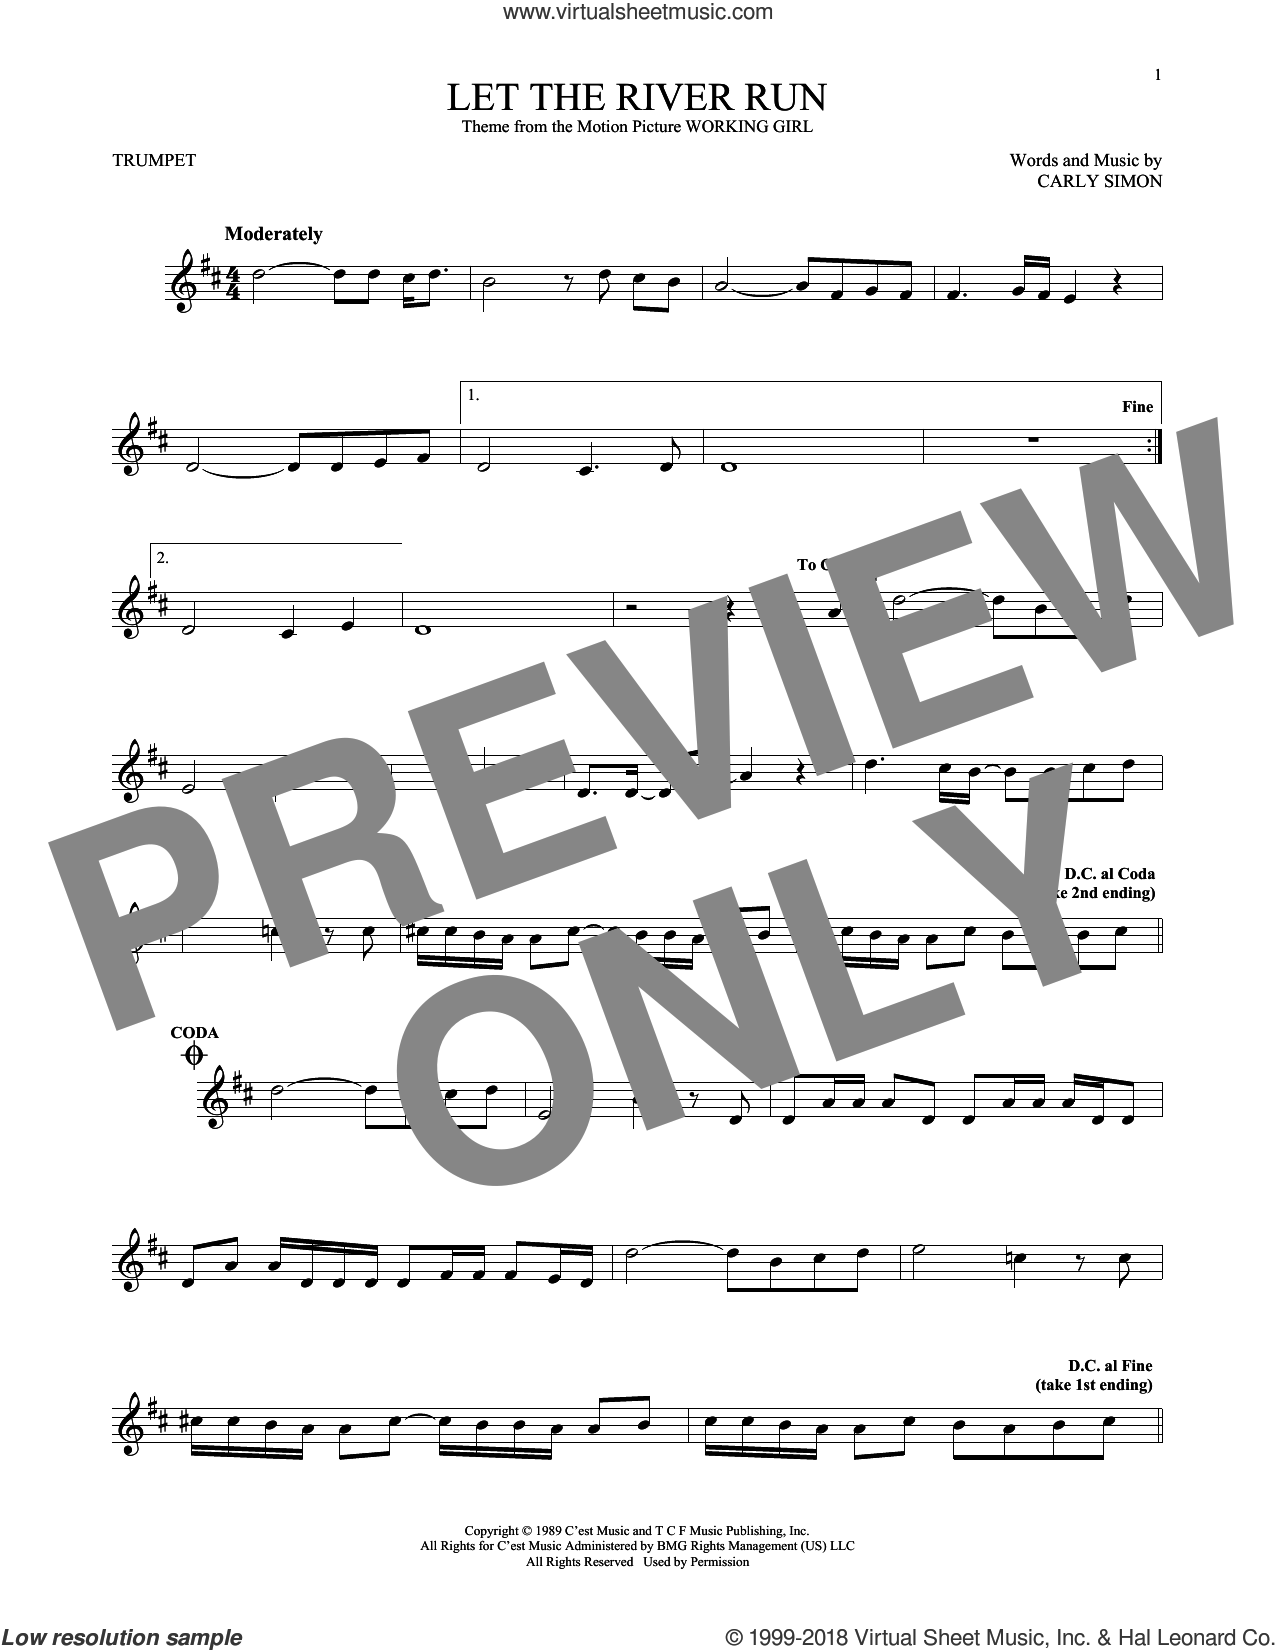 Let The River Run sheet music for trumpet solo by Carly Simon, intermediate skill level